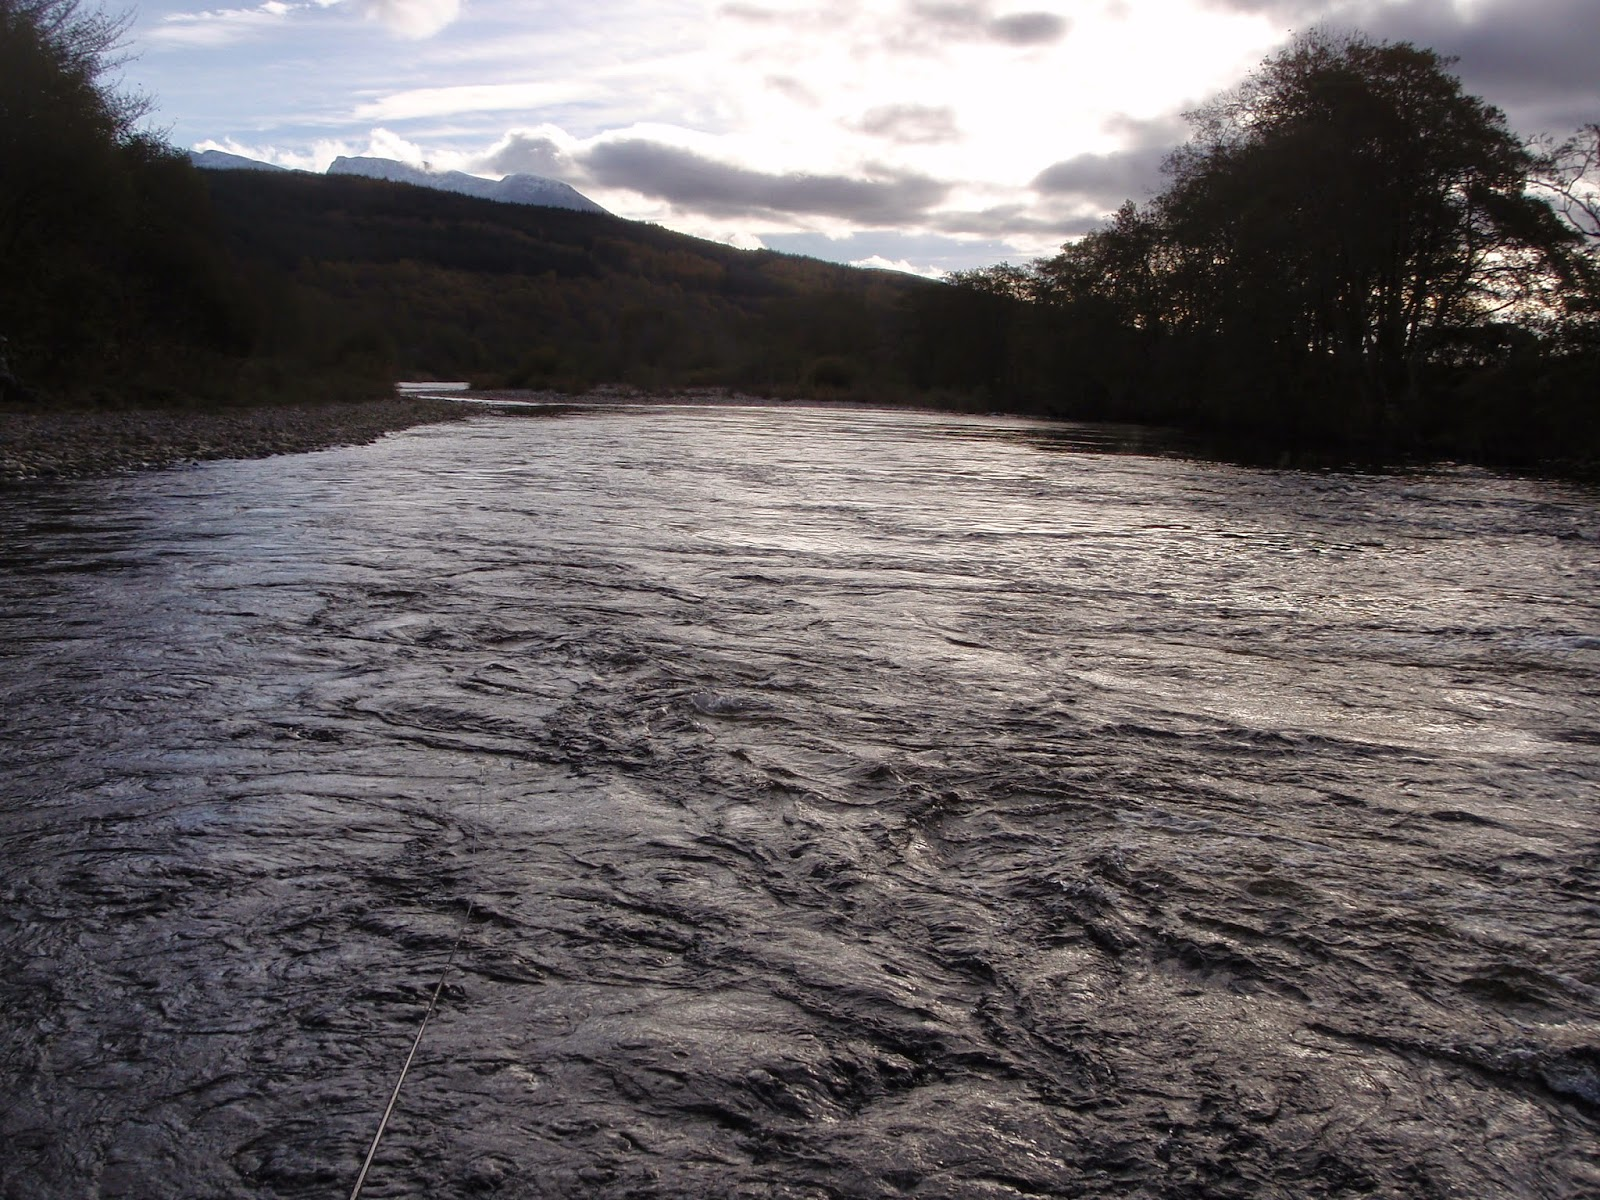 Salmon fly fly fishing for salmon in scotalnd tay for Fly fishing for salmon